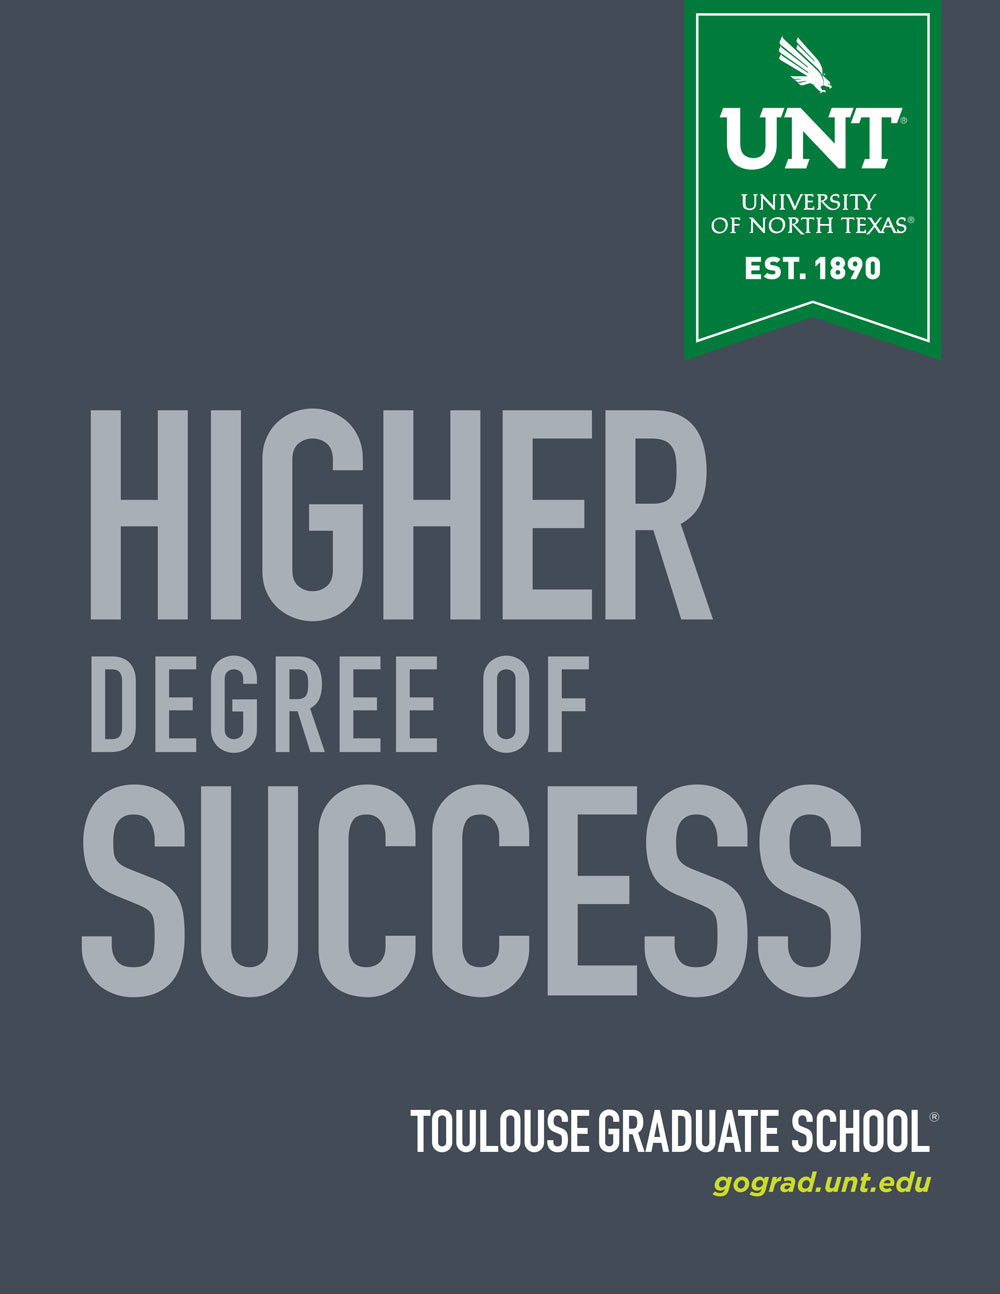 Graduate Viewbook cover